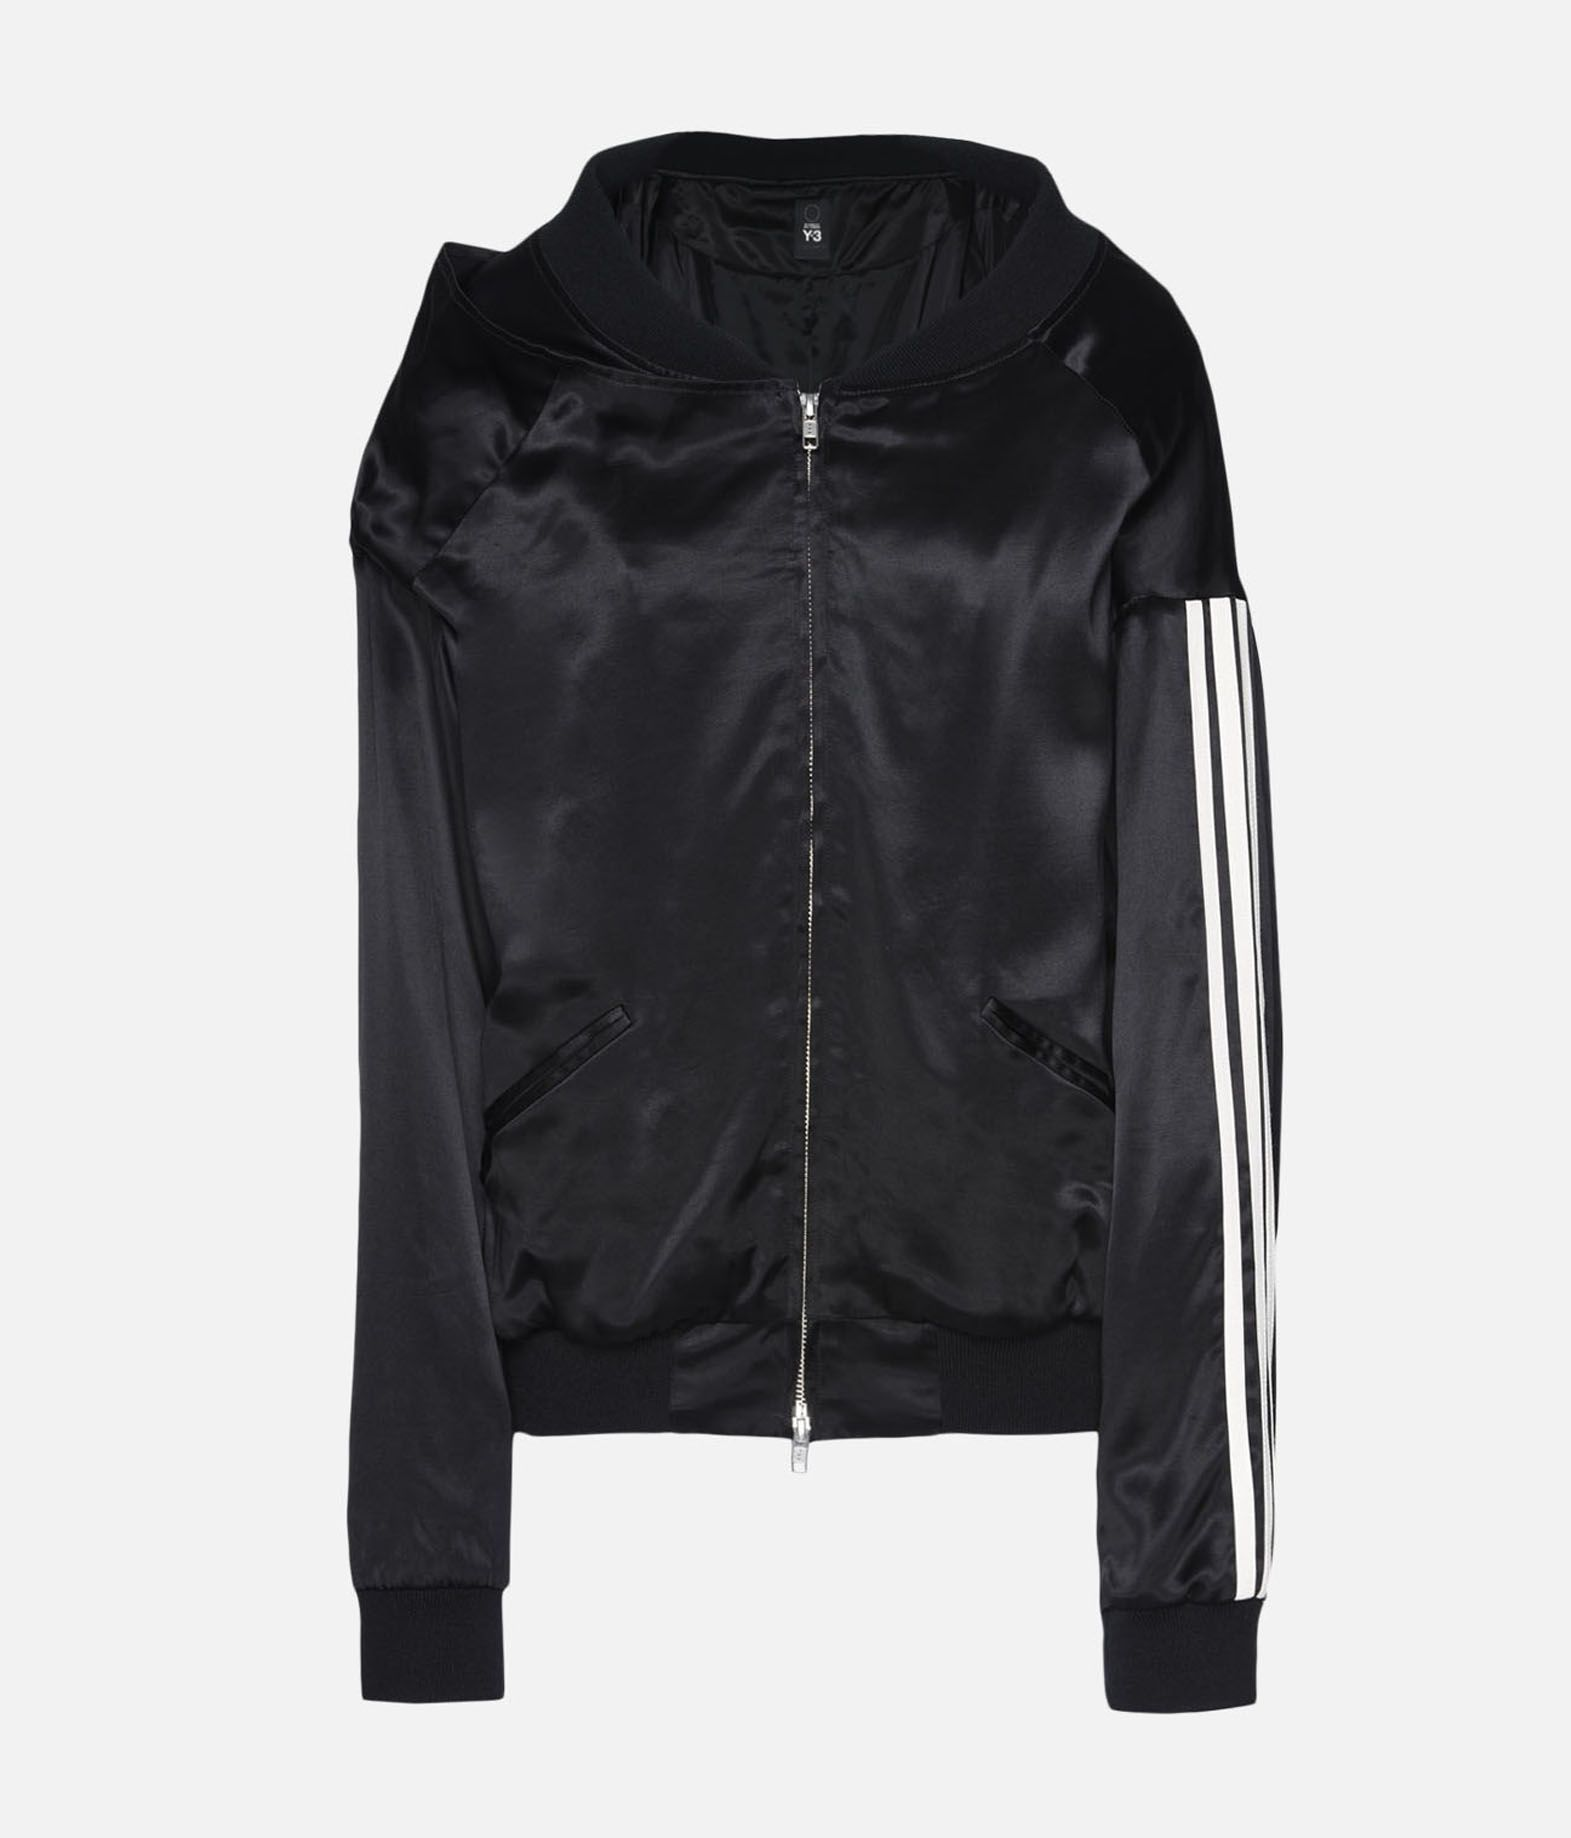 Y-3 Y-3 3-Stripes Lux Track Jacket Track top Damen f